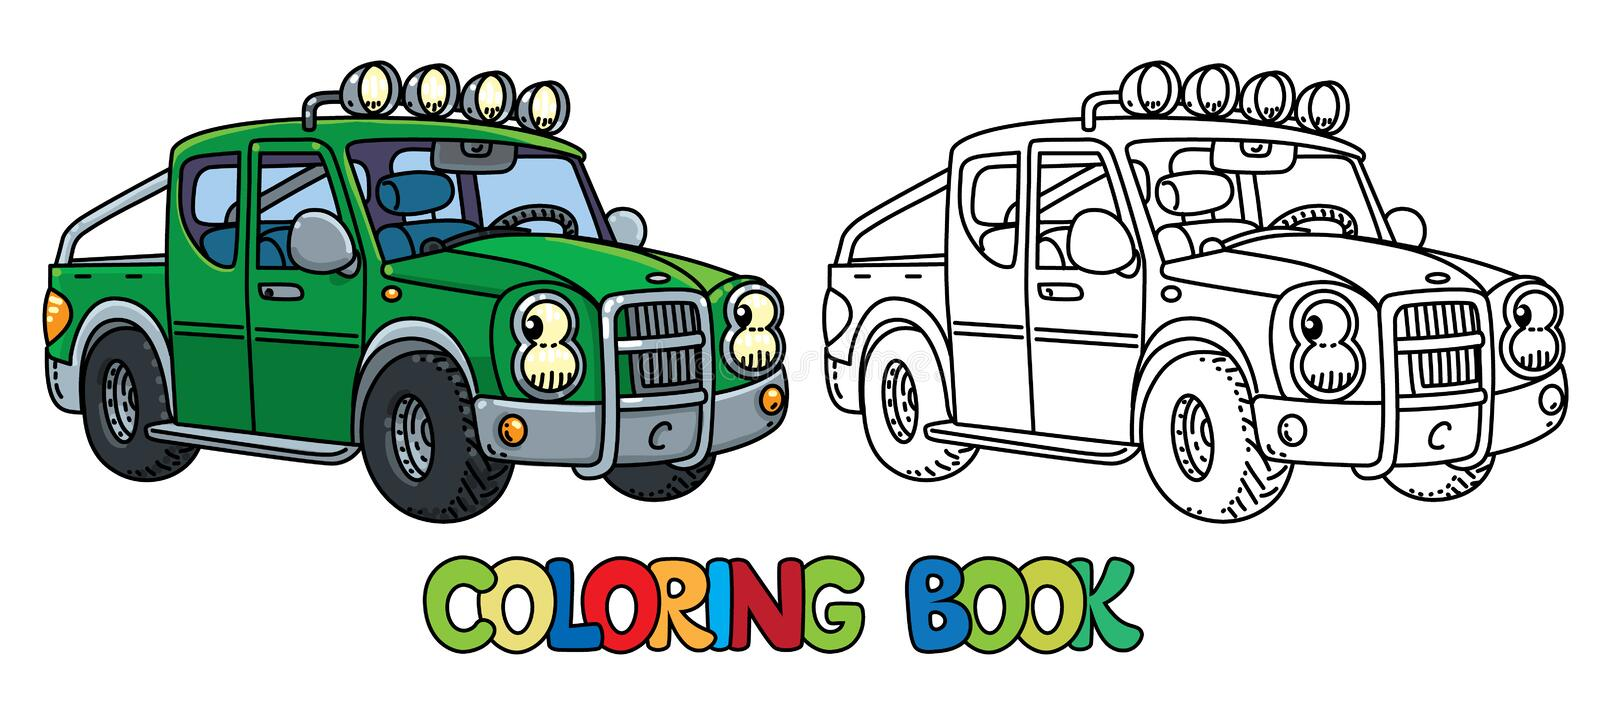 Funny small pickup truck with eyes. Coloring book vector illustration